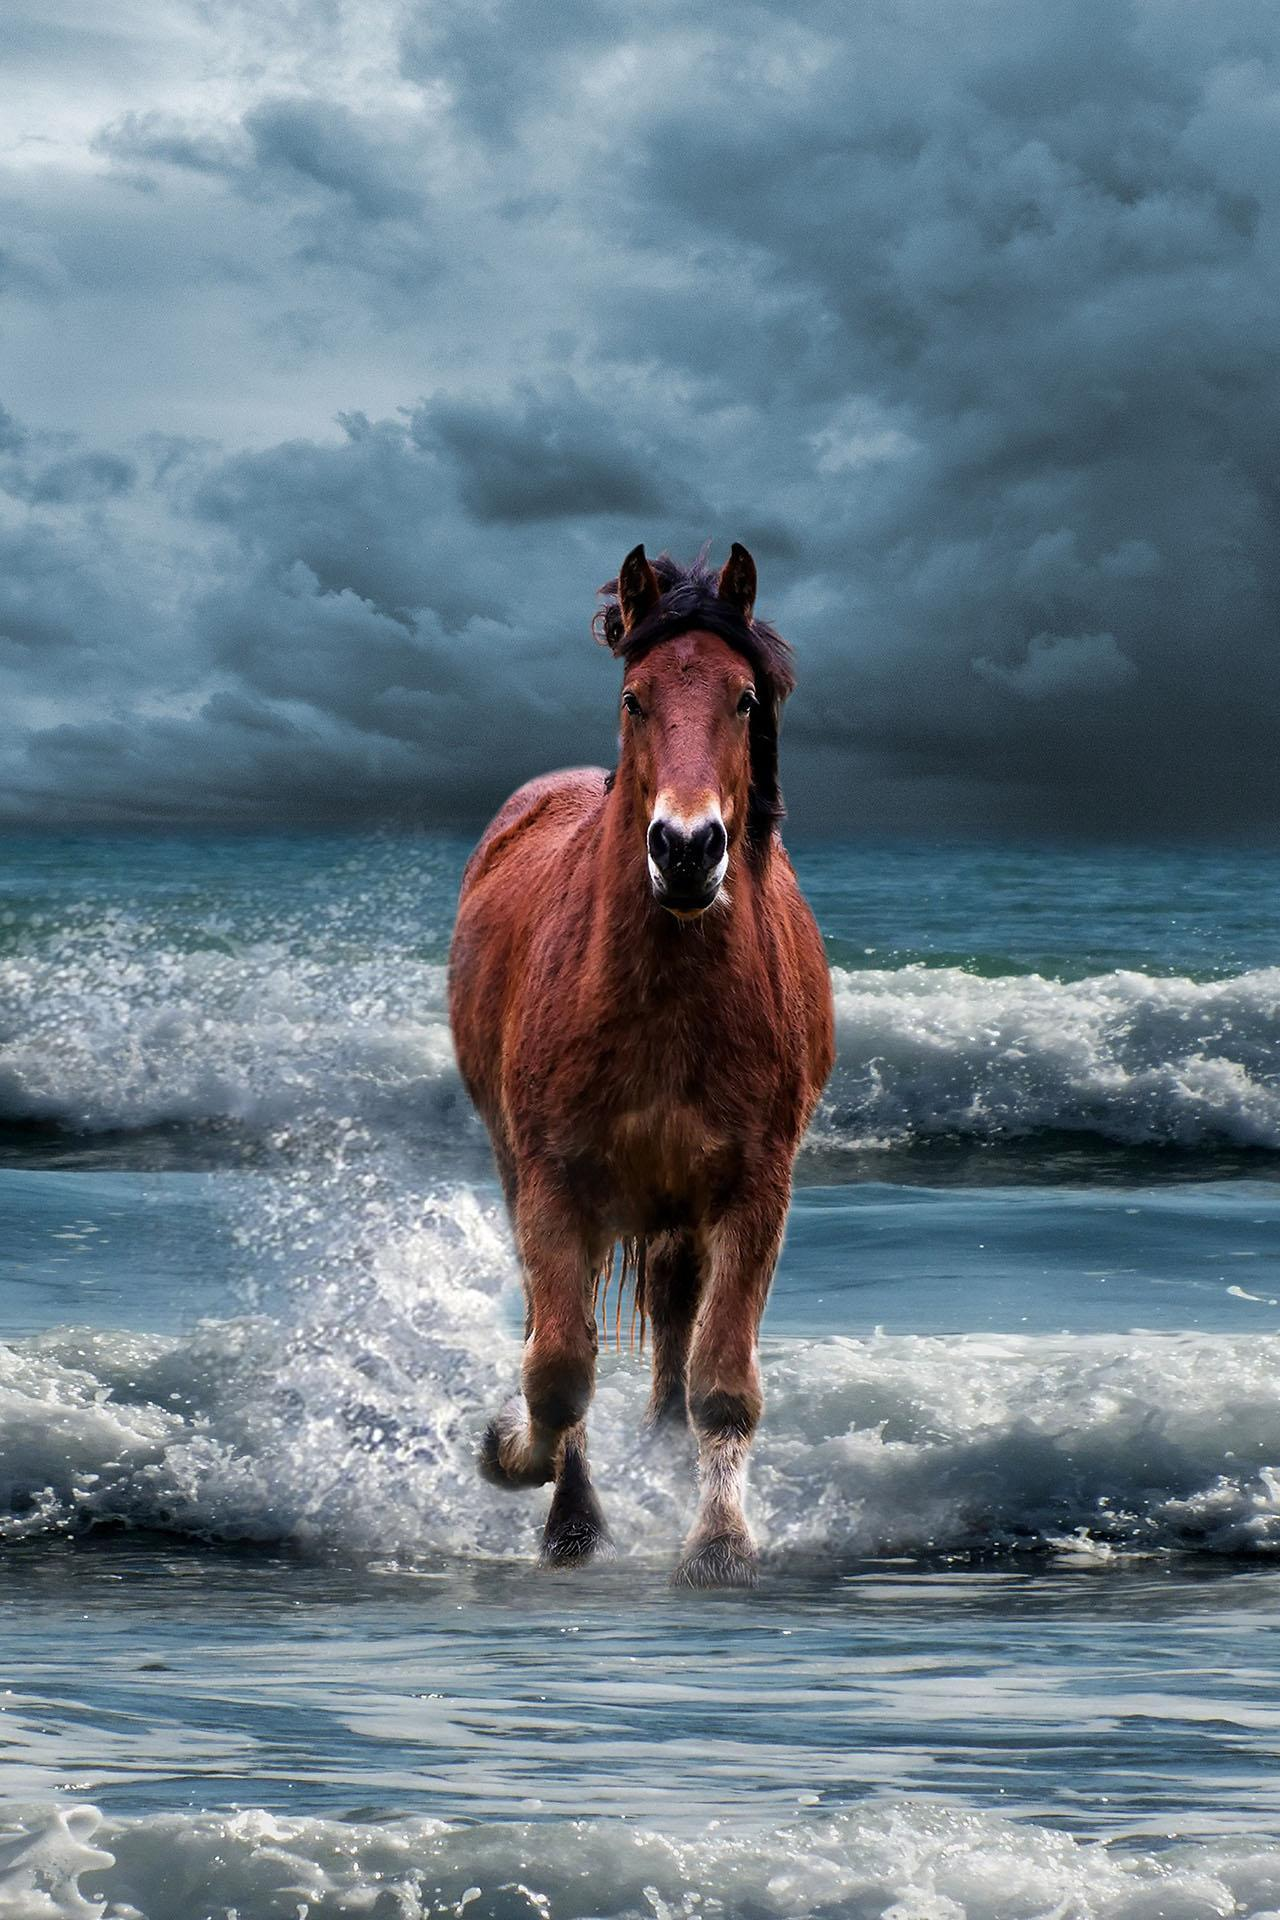 Aesthetic Horse Wallpapers Wallpaper Cave